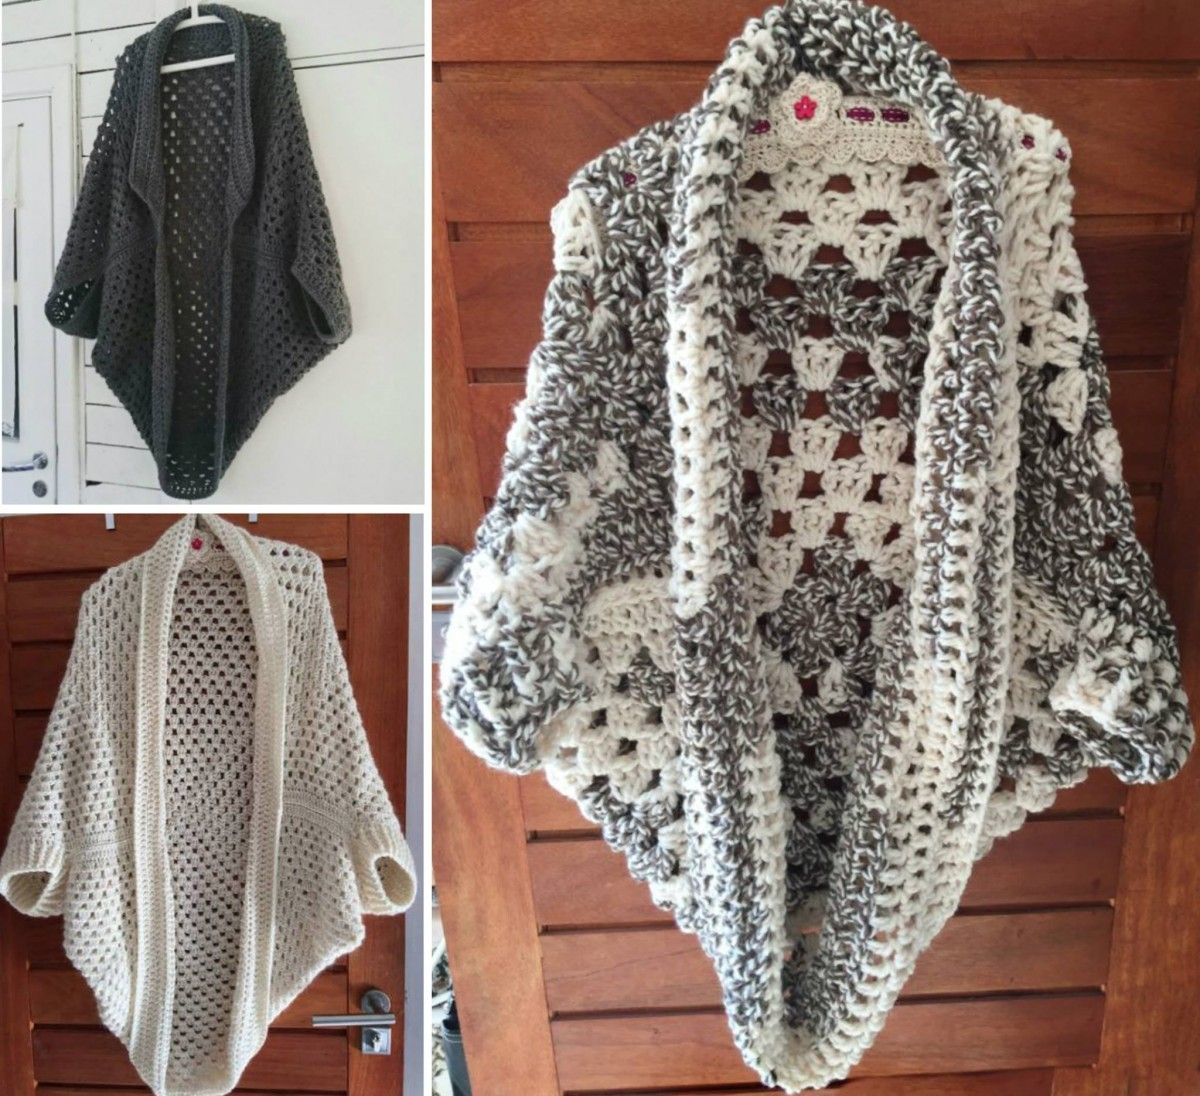 Crochet Cocoon Shrug Pattern - Lots Of Ideas | Ganchillo, Patrones y ...